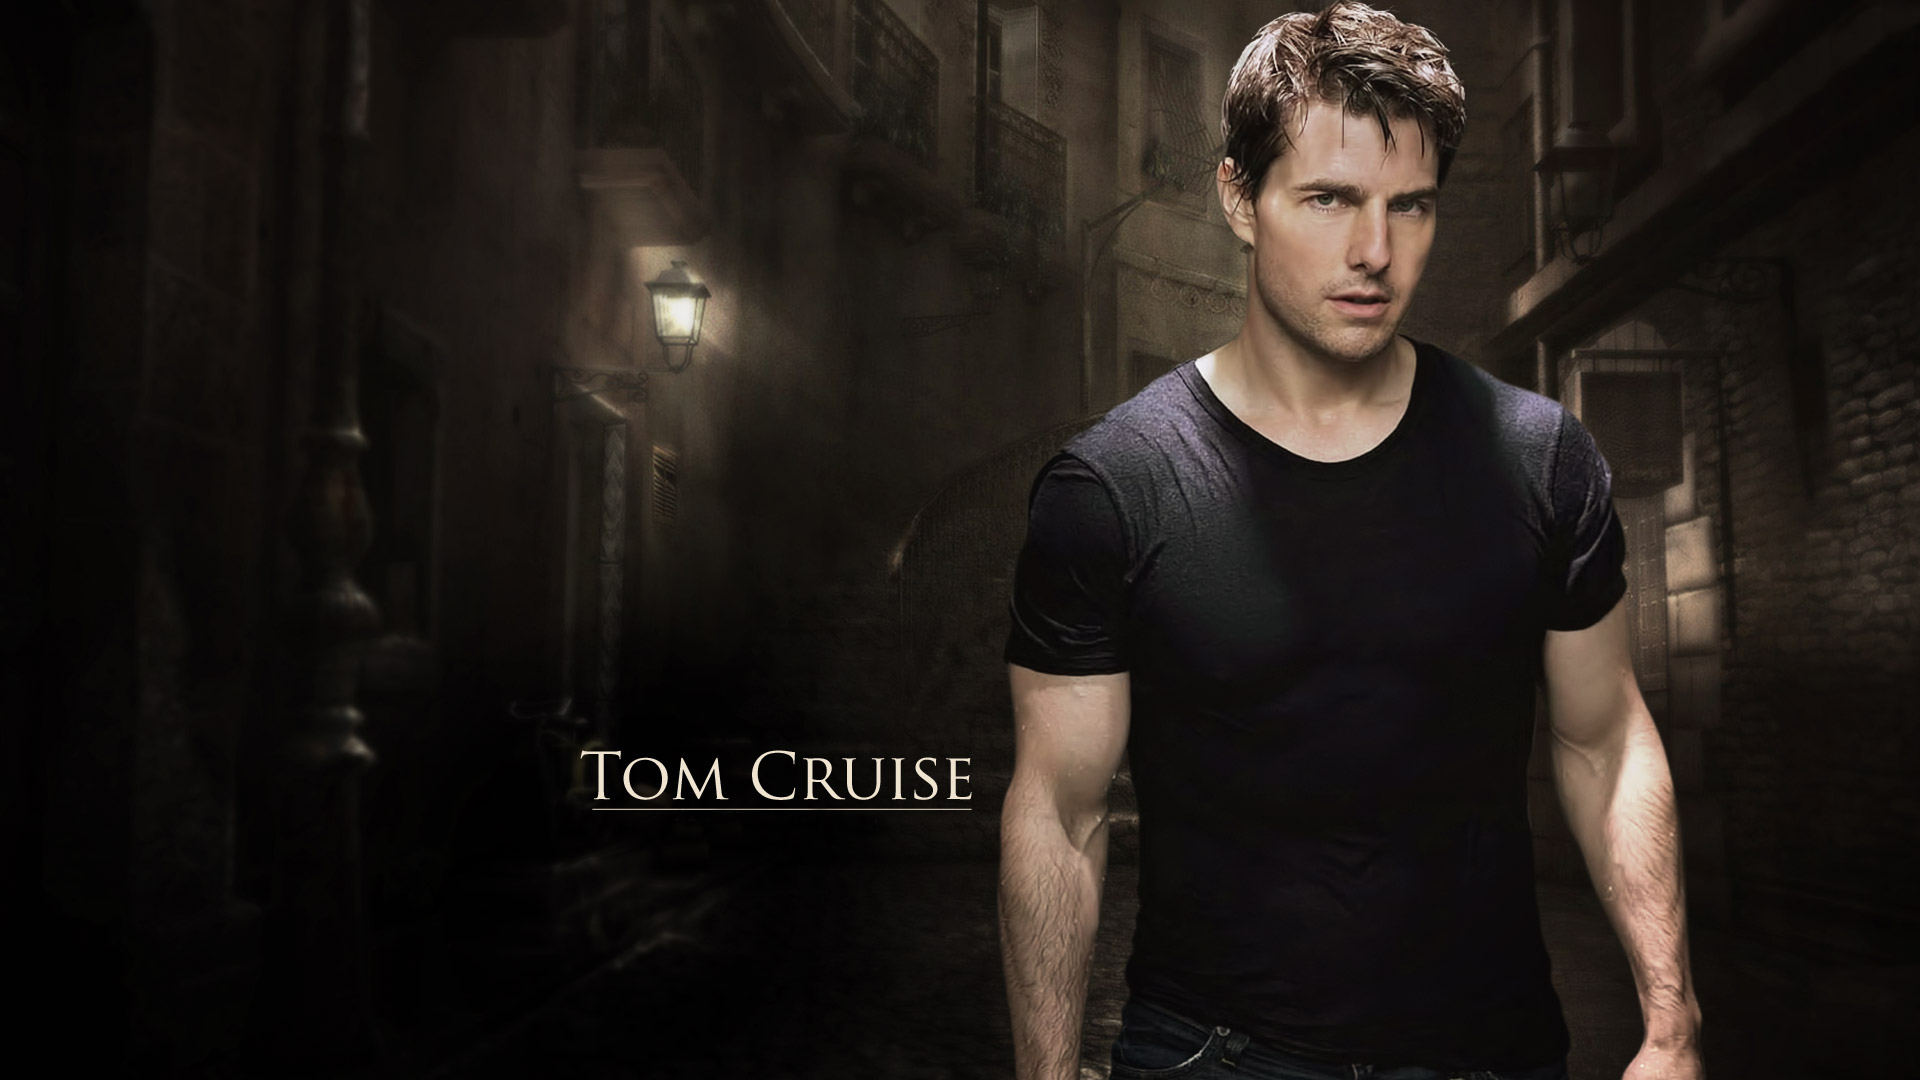 Tom Cruise Wallpapers High Resolution and Quality 1920x1080